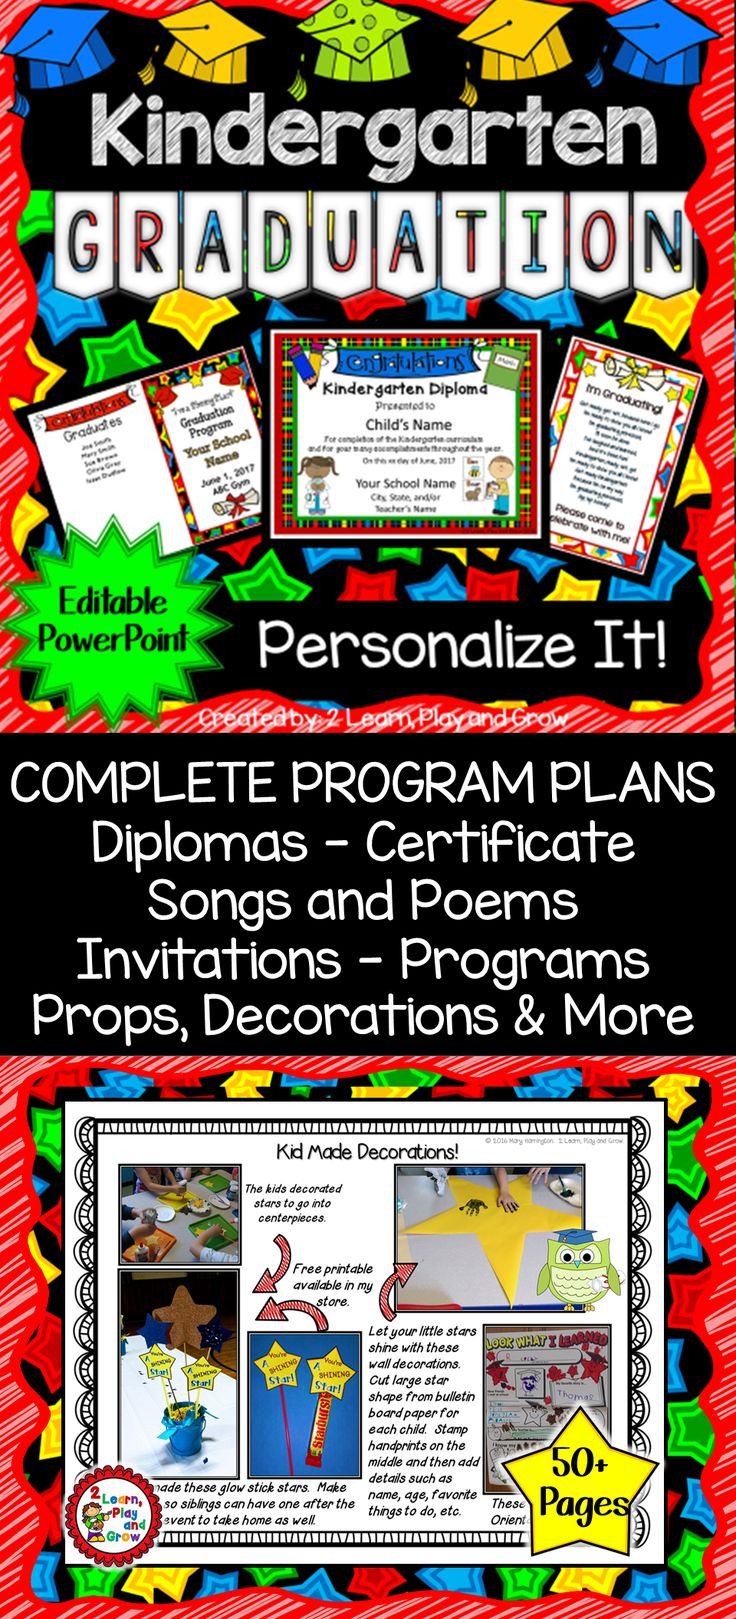 Kindergarten Graduation is such a special time of year, but it can be so time consuming and stressful if your the one putting it on.  It doesn't have to be with this Graduation Kit.  Tons of printable diplomas, programs, graduation invitations, not to mention ideas and instructions.  You have so much to do at the end of the year, click to see the preview of this time saving graduation program.